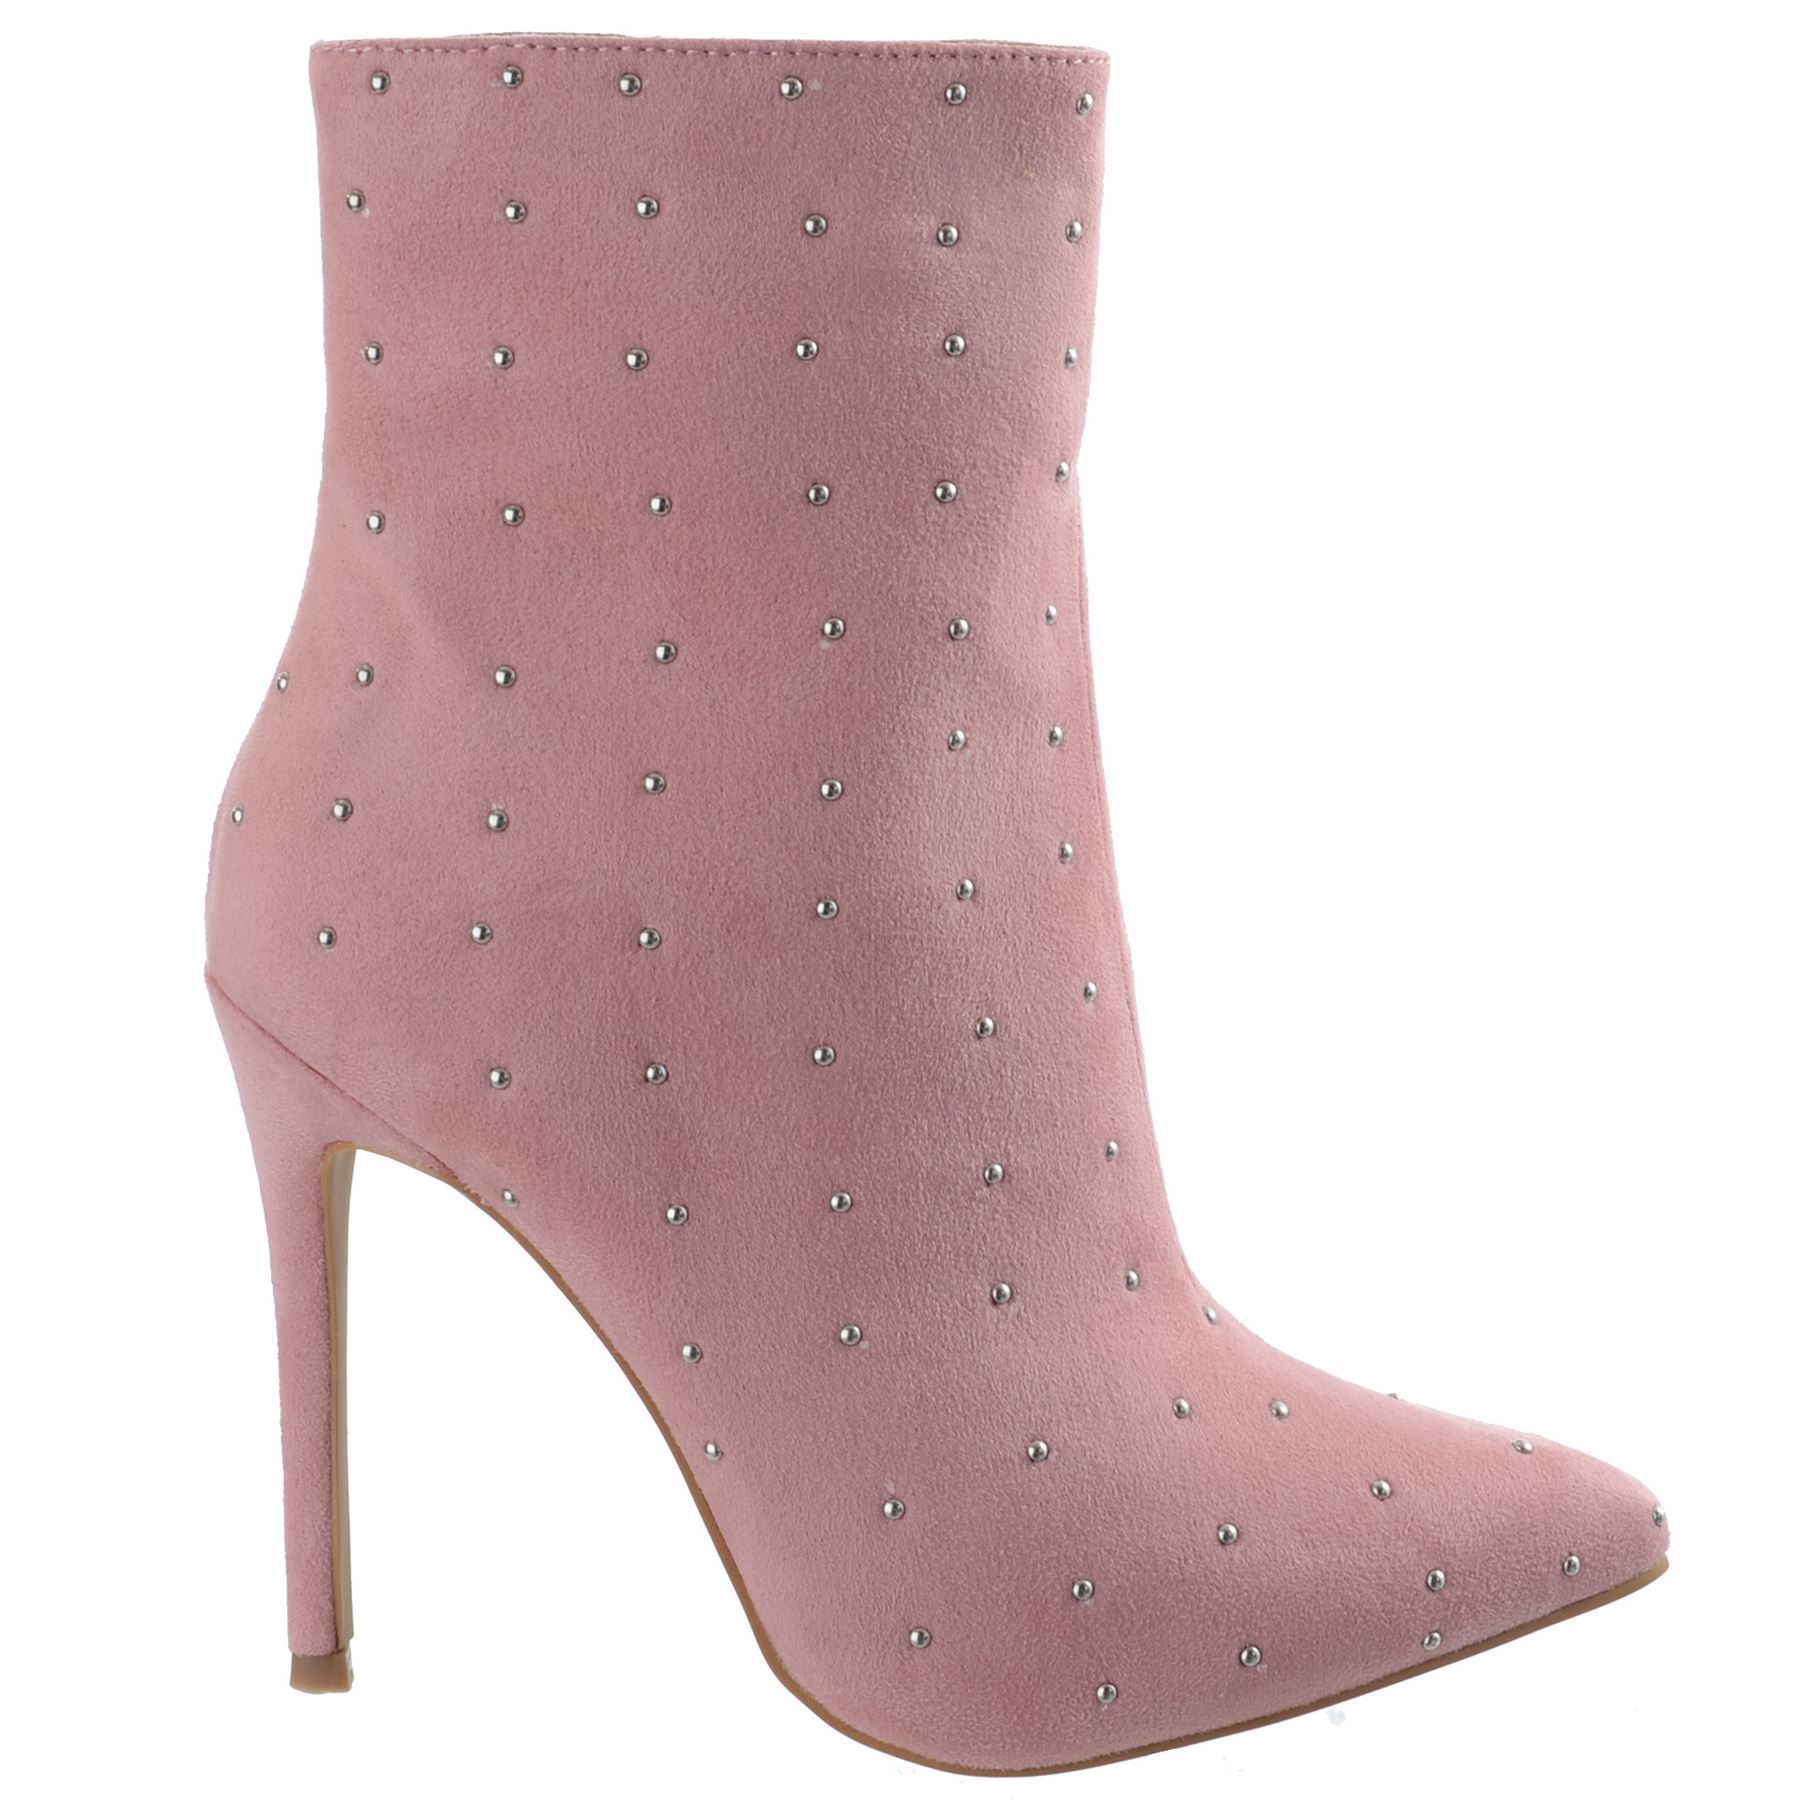 Ladies-Womens-High-Stiletto-Heel-Pointy-Toe-Zip-Up-Ankle-Boots-Shoes-Size-3-8 miniatuur 9